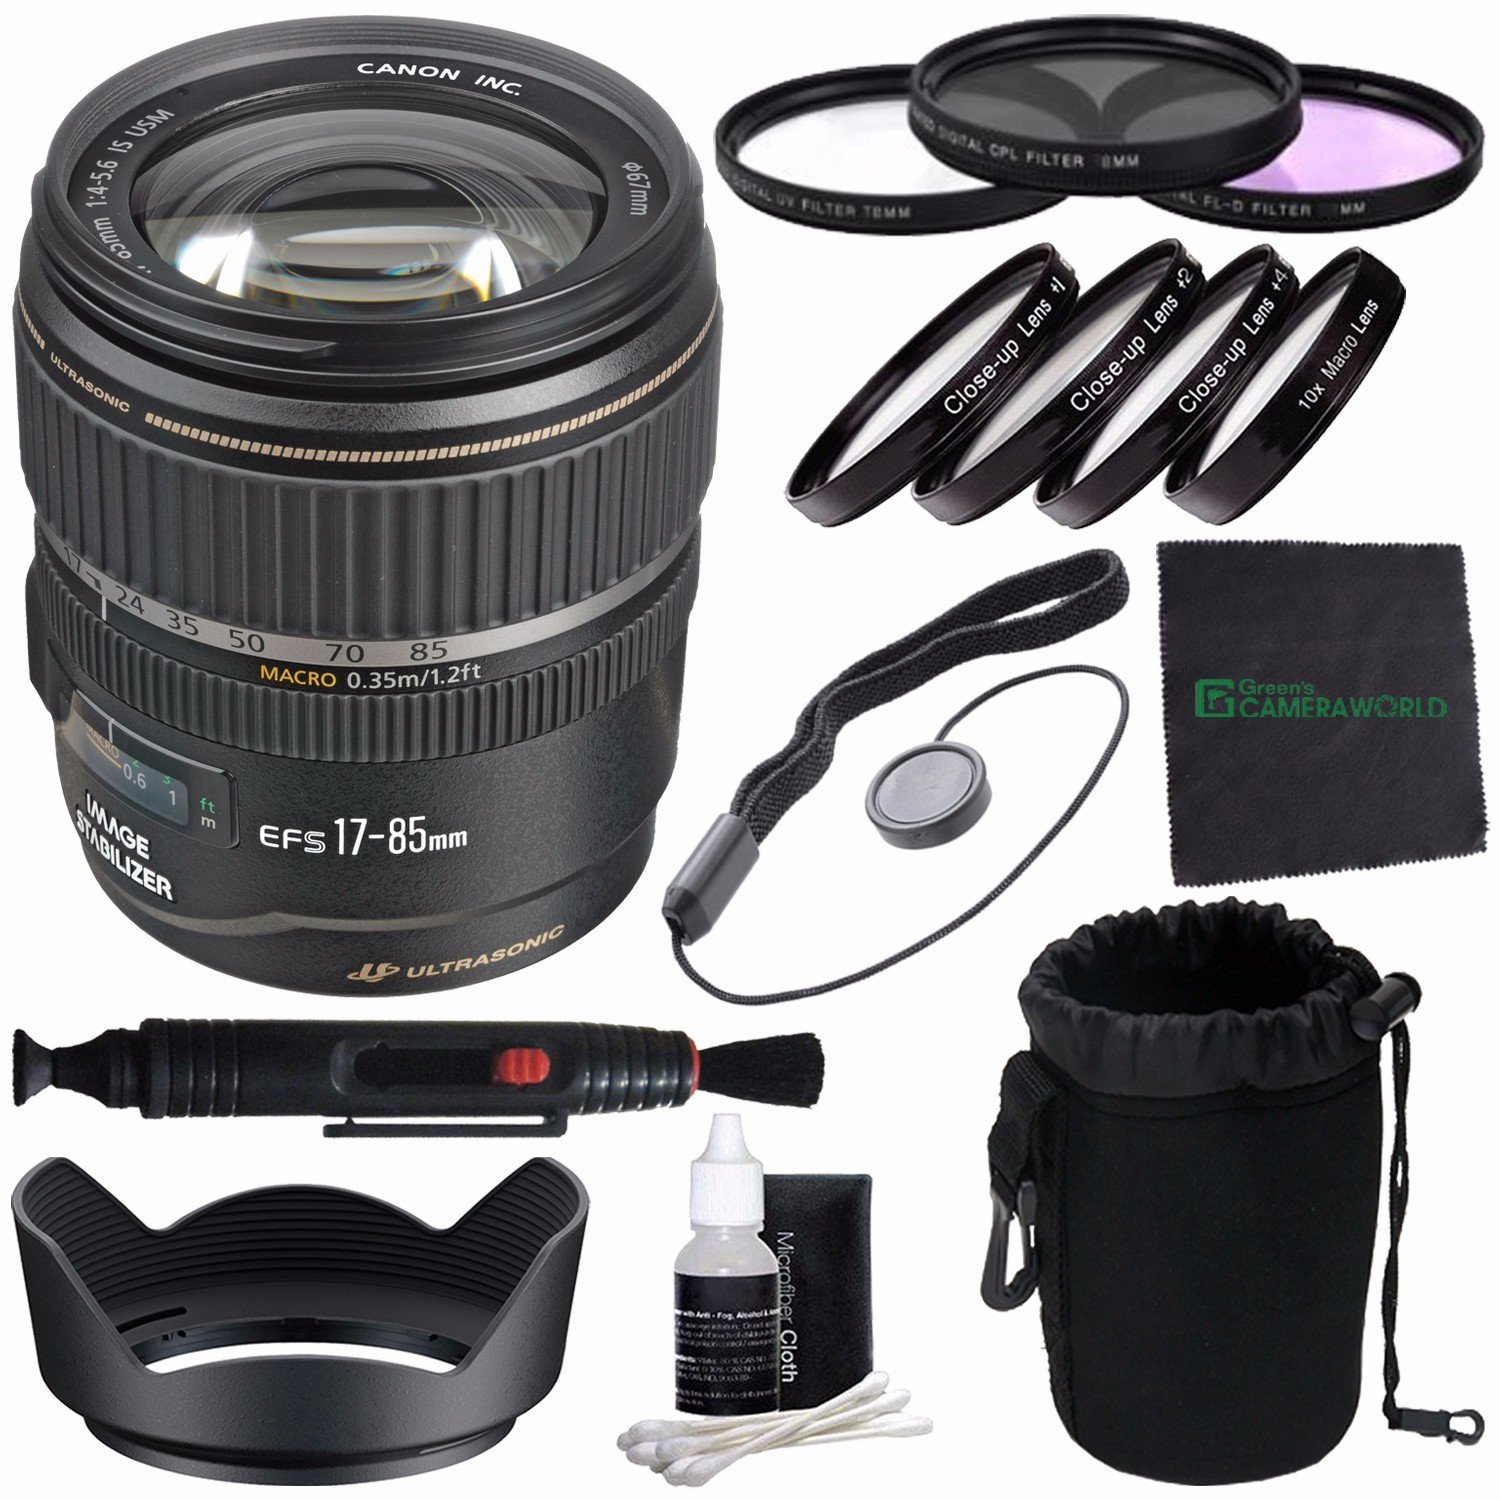 Canon EF-S 17-85mm f/4-5.6 IS USM Lens + 67mm 3 Piece Filter Set (UV, CPL, FL) + 67mm +1 +2 +4 +10 Close-Up Macro Filter Set with Pouch + Pouch + Lens Cleaning Pen + Lens Hood + Cleaning Cloth Bundle